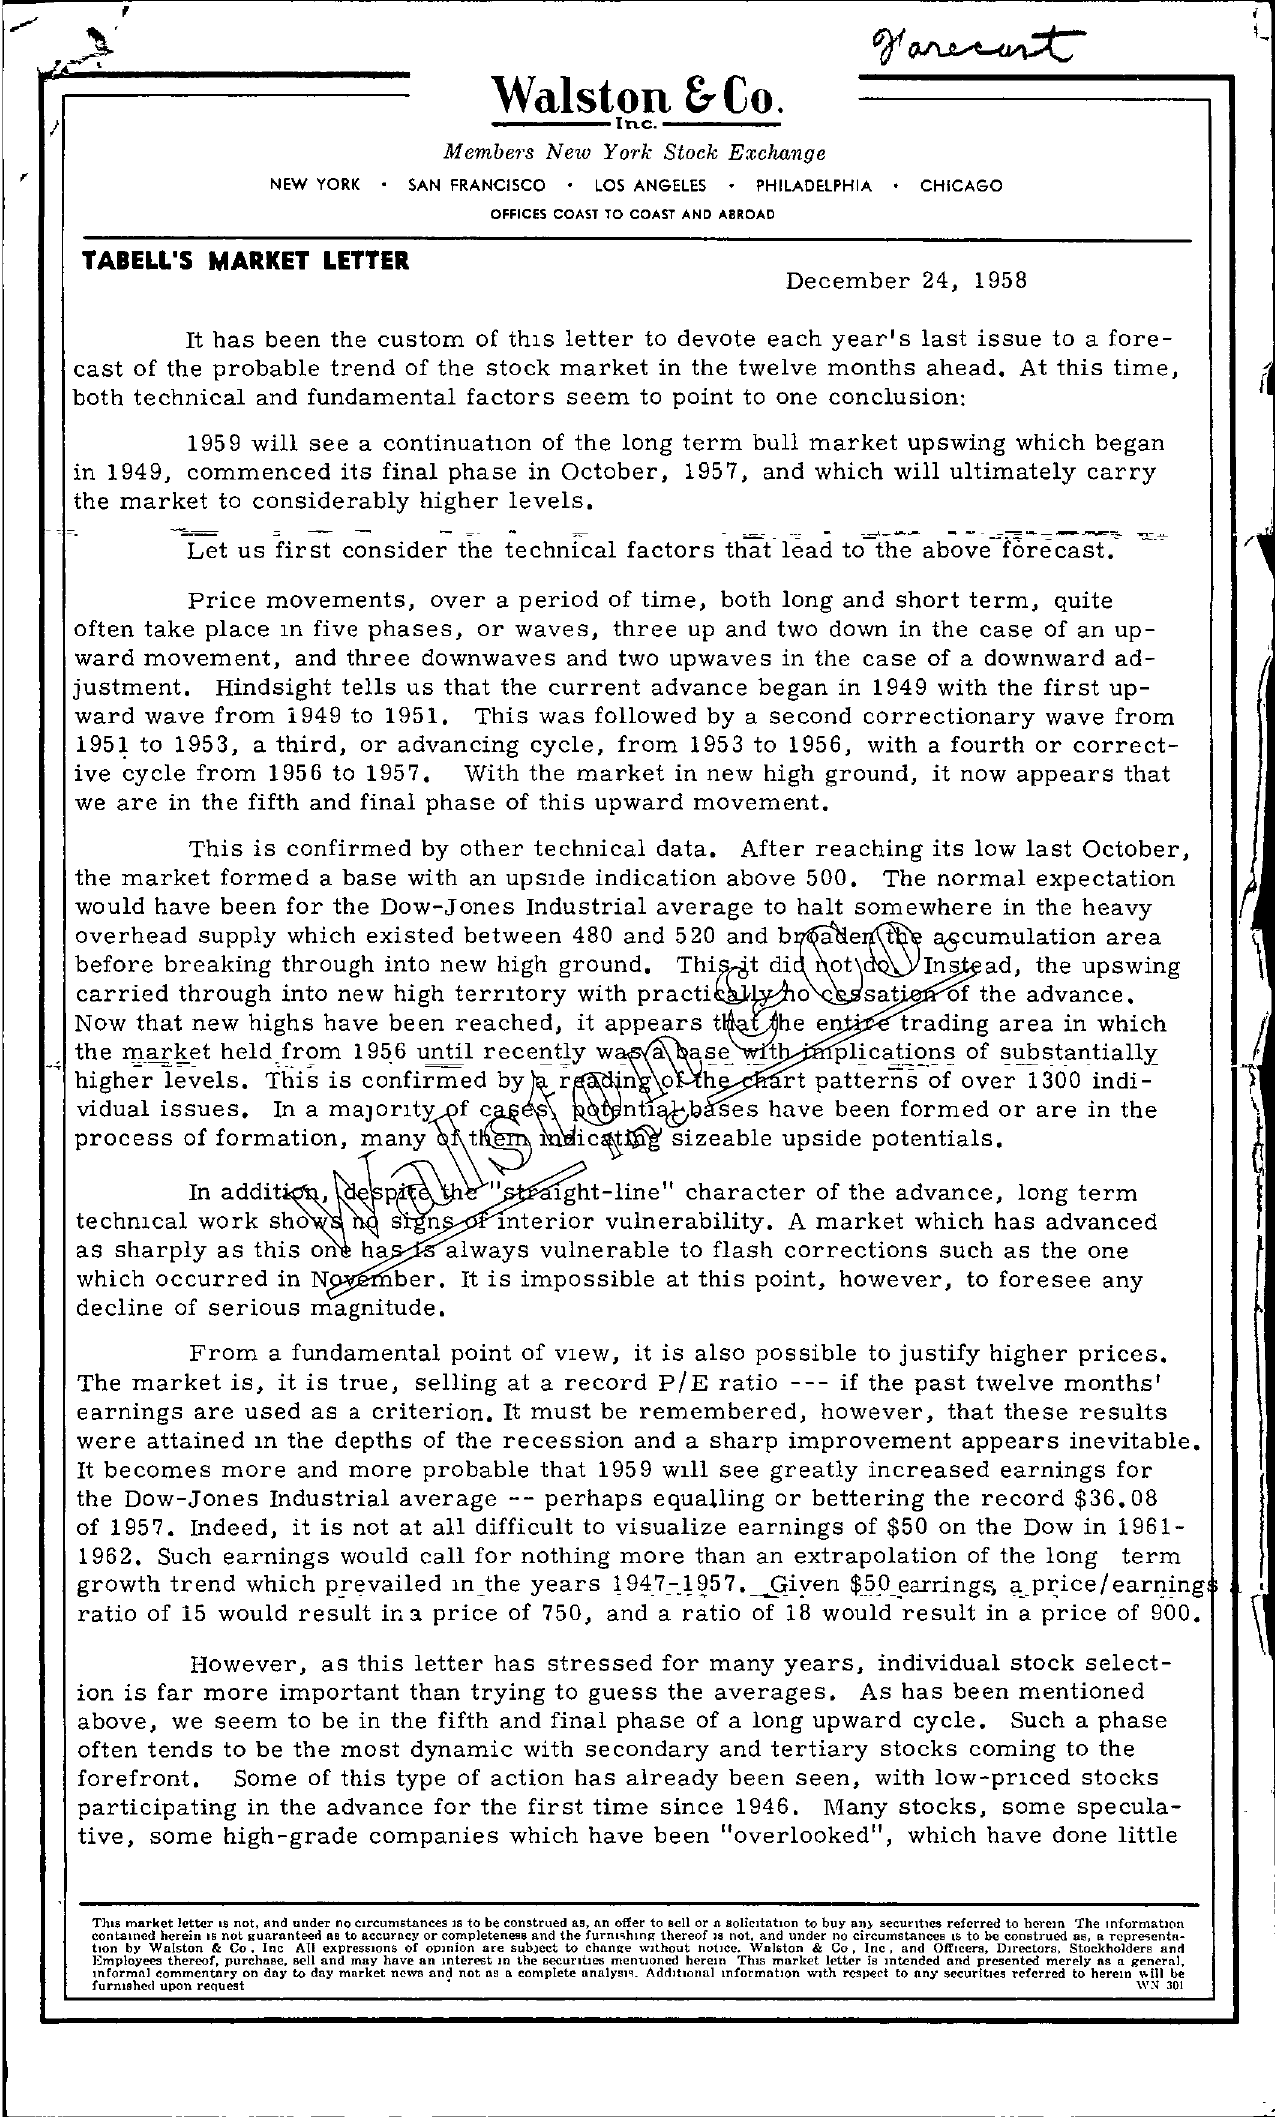 Tabell's Market Letter - December 24, 1958 page 1